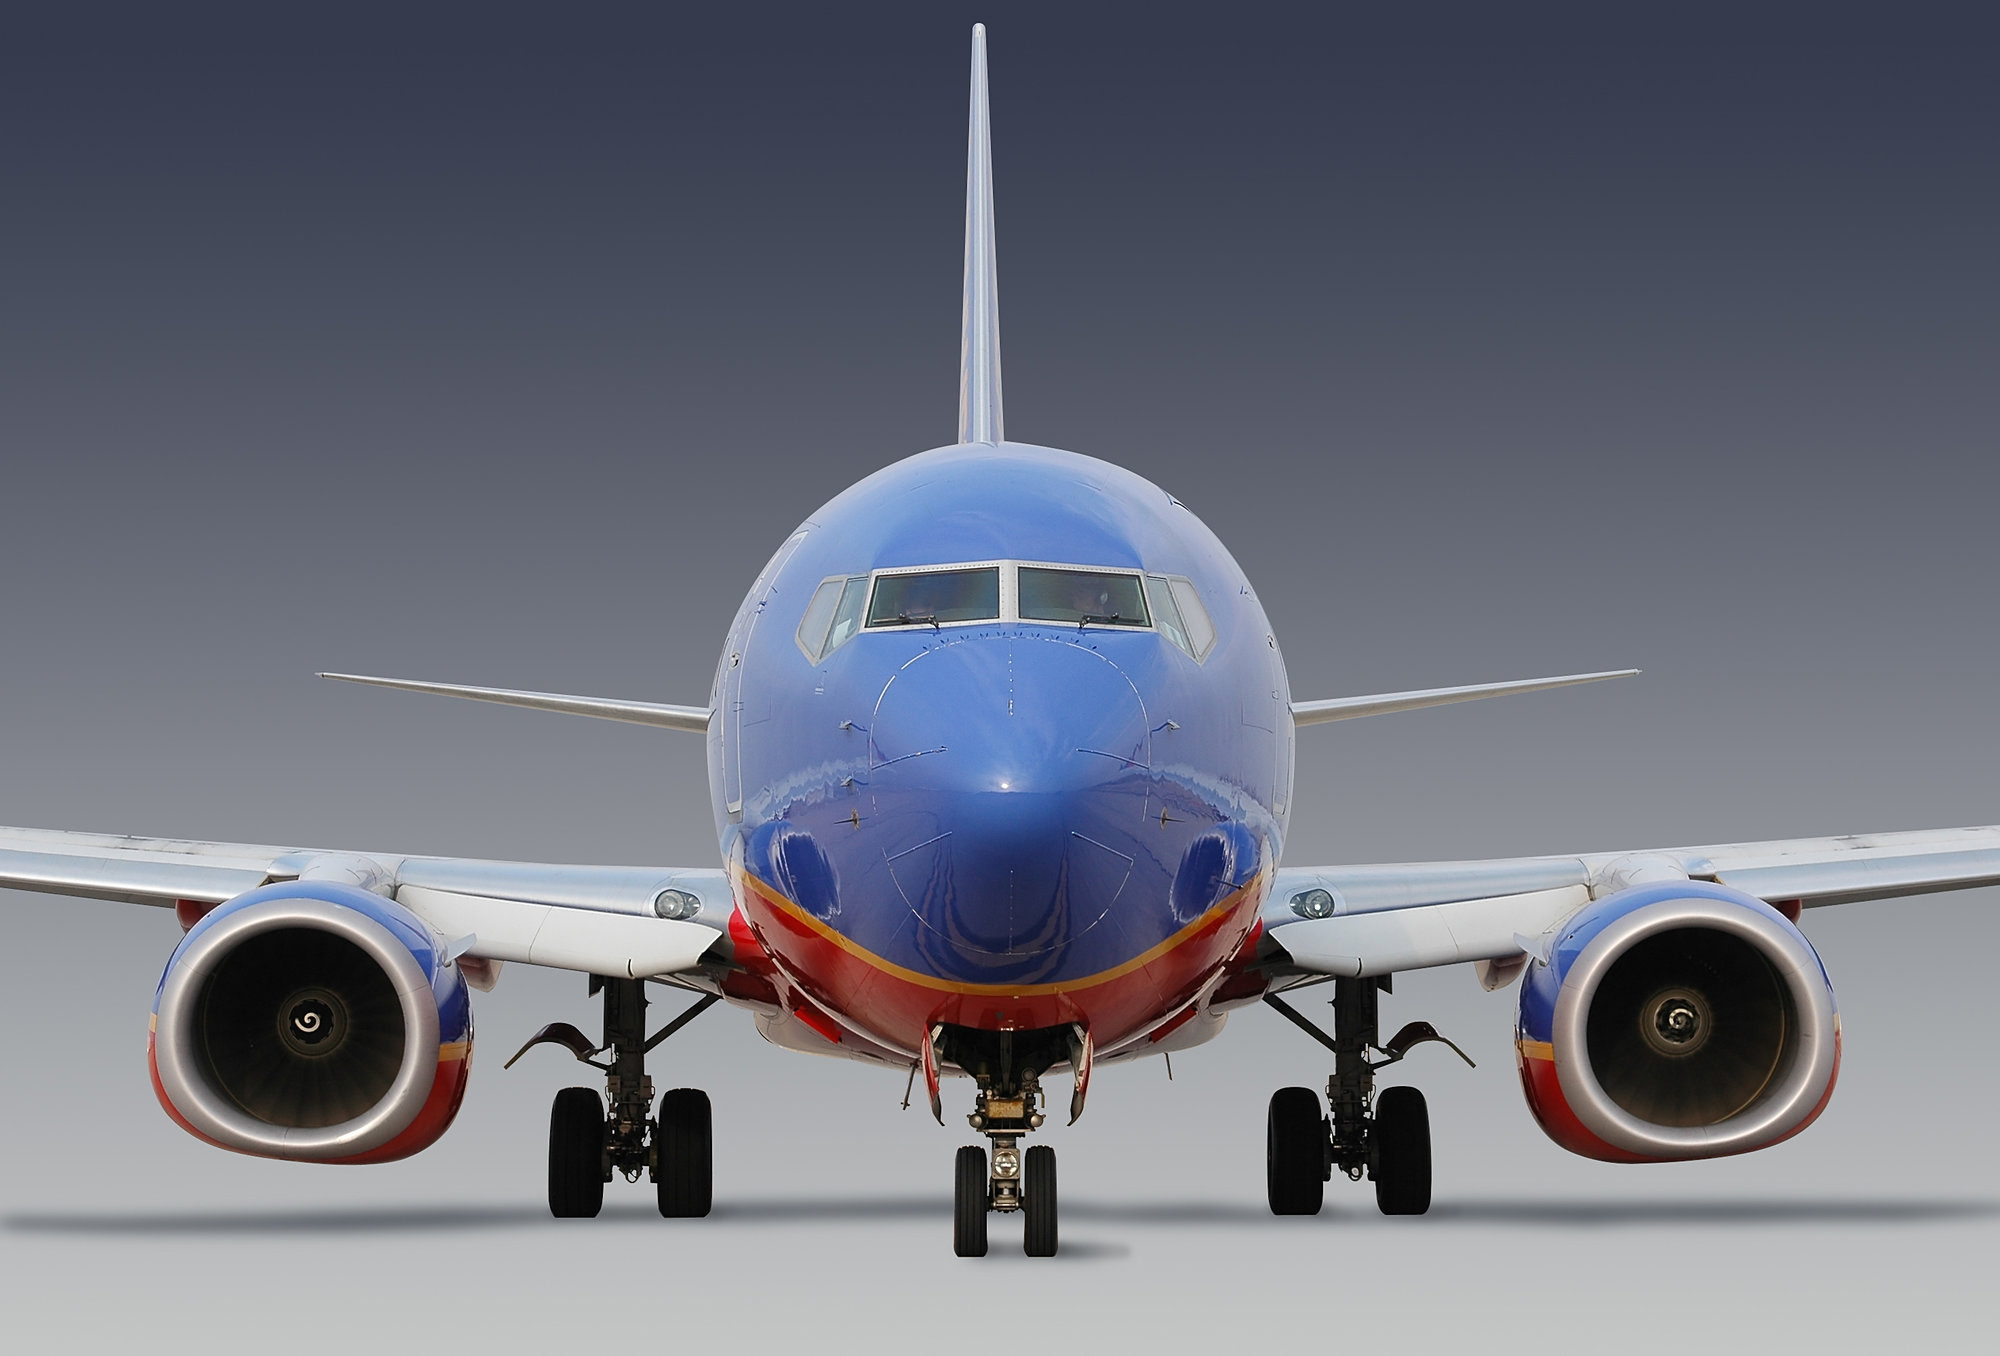 Deal alert: June is the perfect month to fly Southwest if you love cheap flights